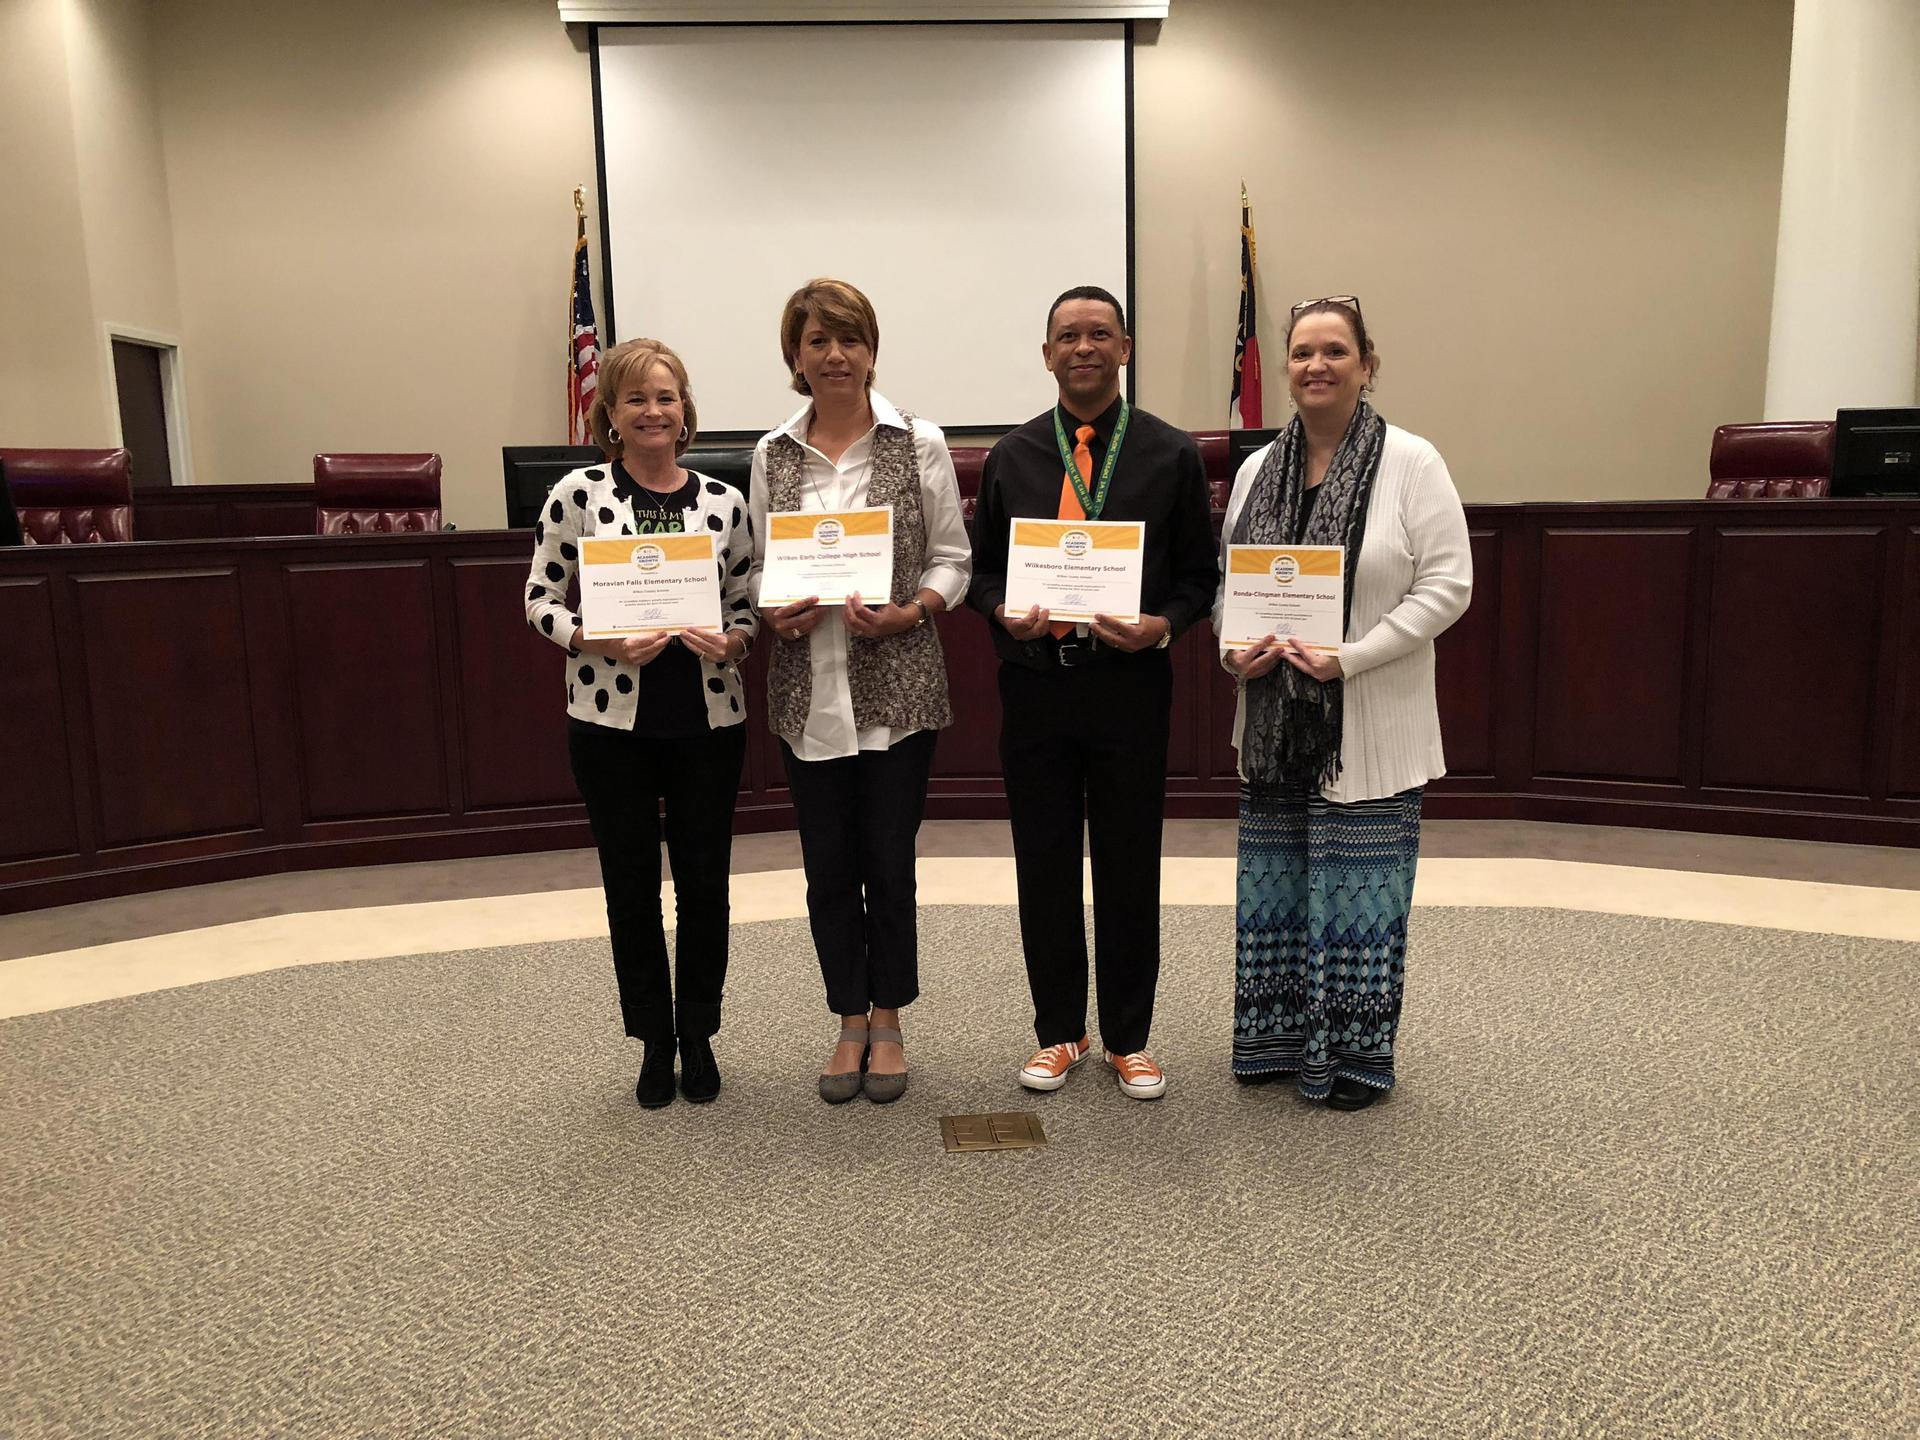 Principals from MFES, WECHS, WES, and RCES recognized for Exceeding Expected Growth